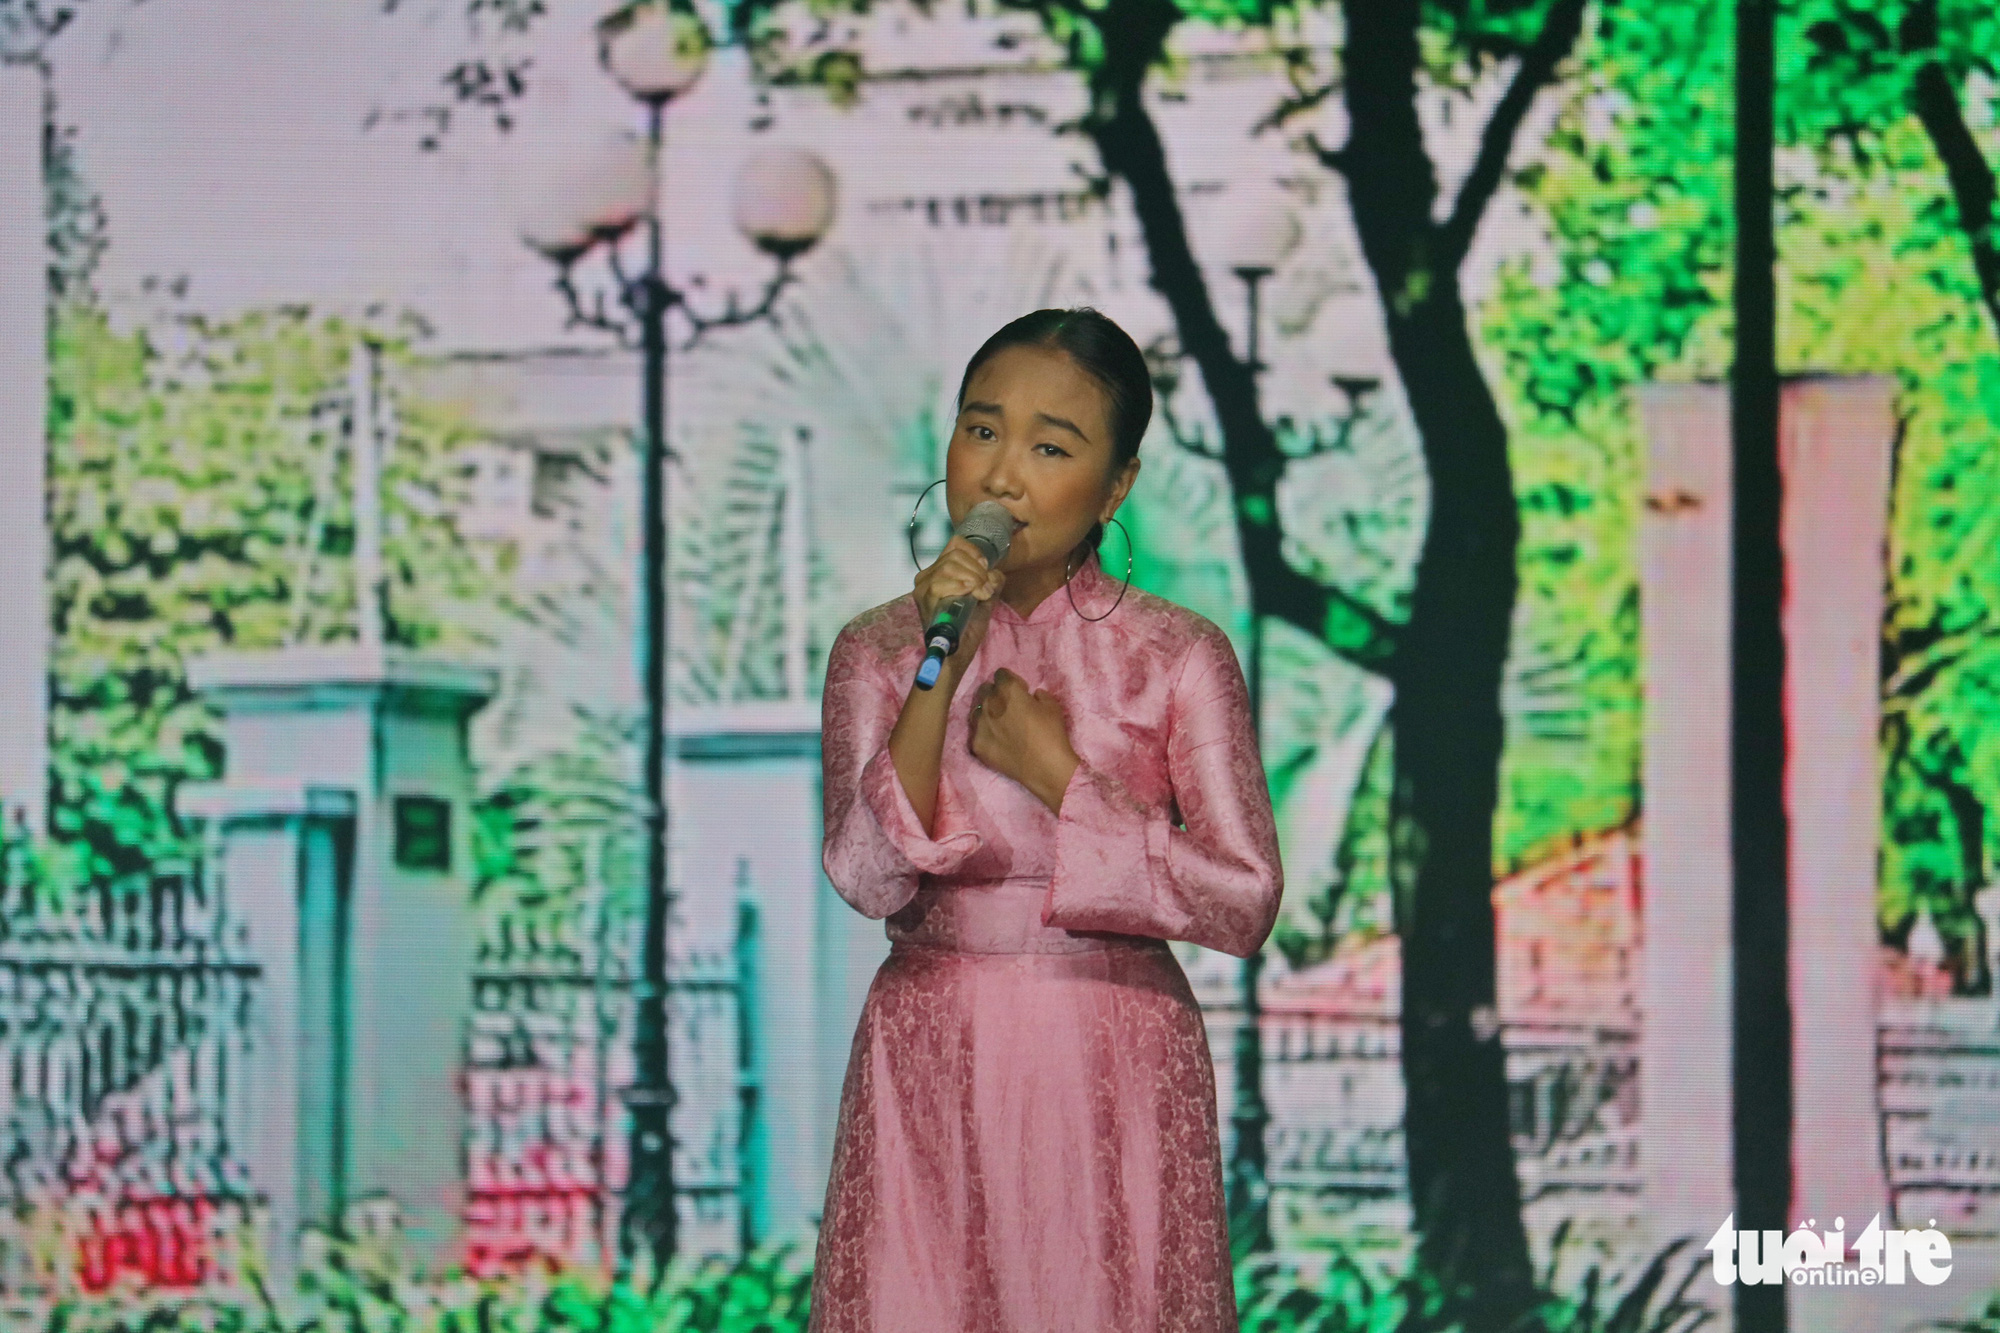 Singer Doan Trang performs at the Ho Chi Minh City Ao Dai Festival at Nguyen Hue Walking Street, Ho Chi Minh City, June 27, 2020. Photo: Ngoc Phuong / Tuoi Tre